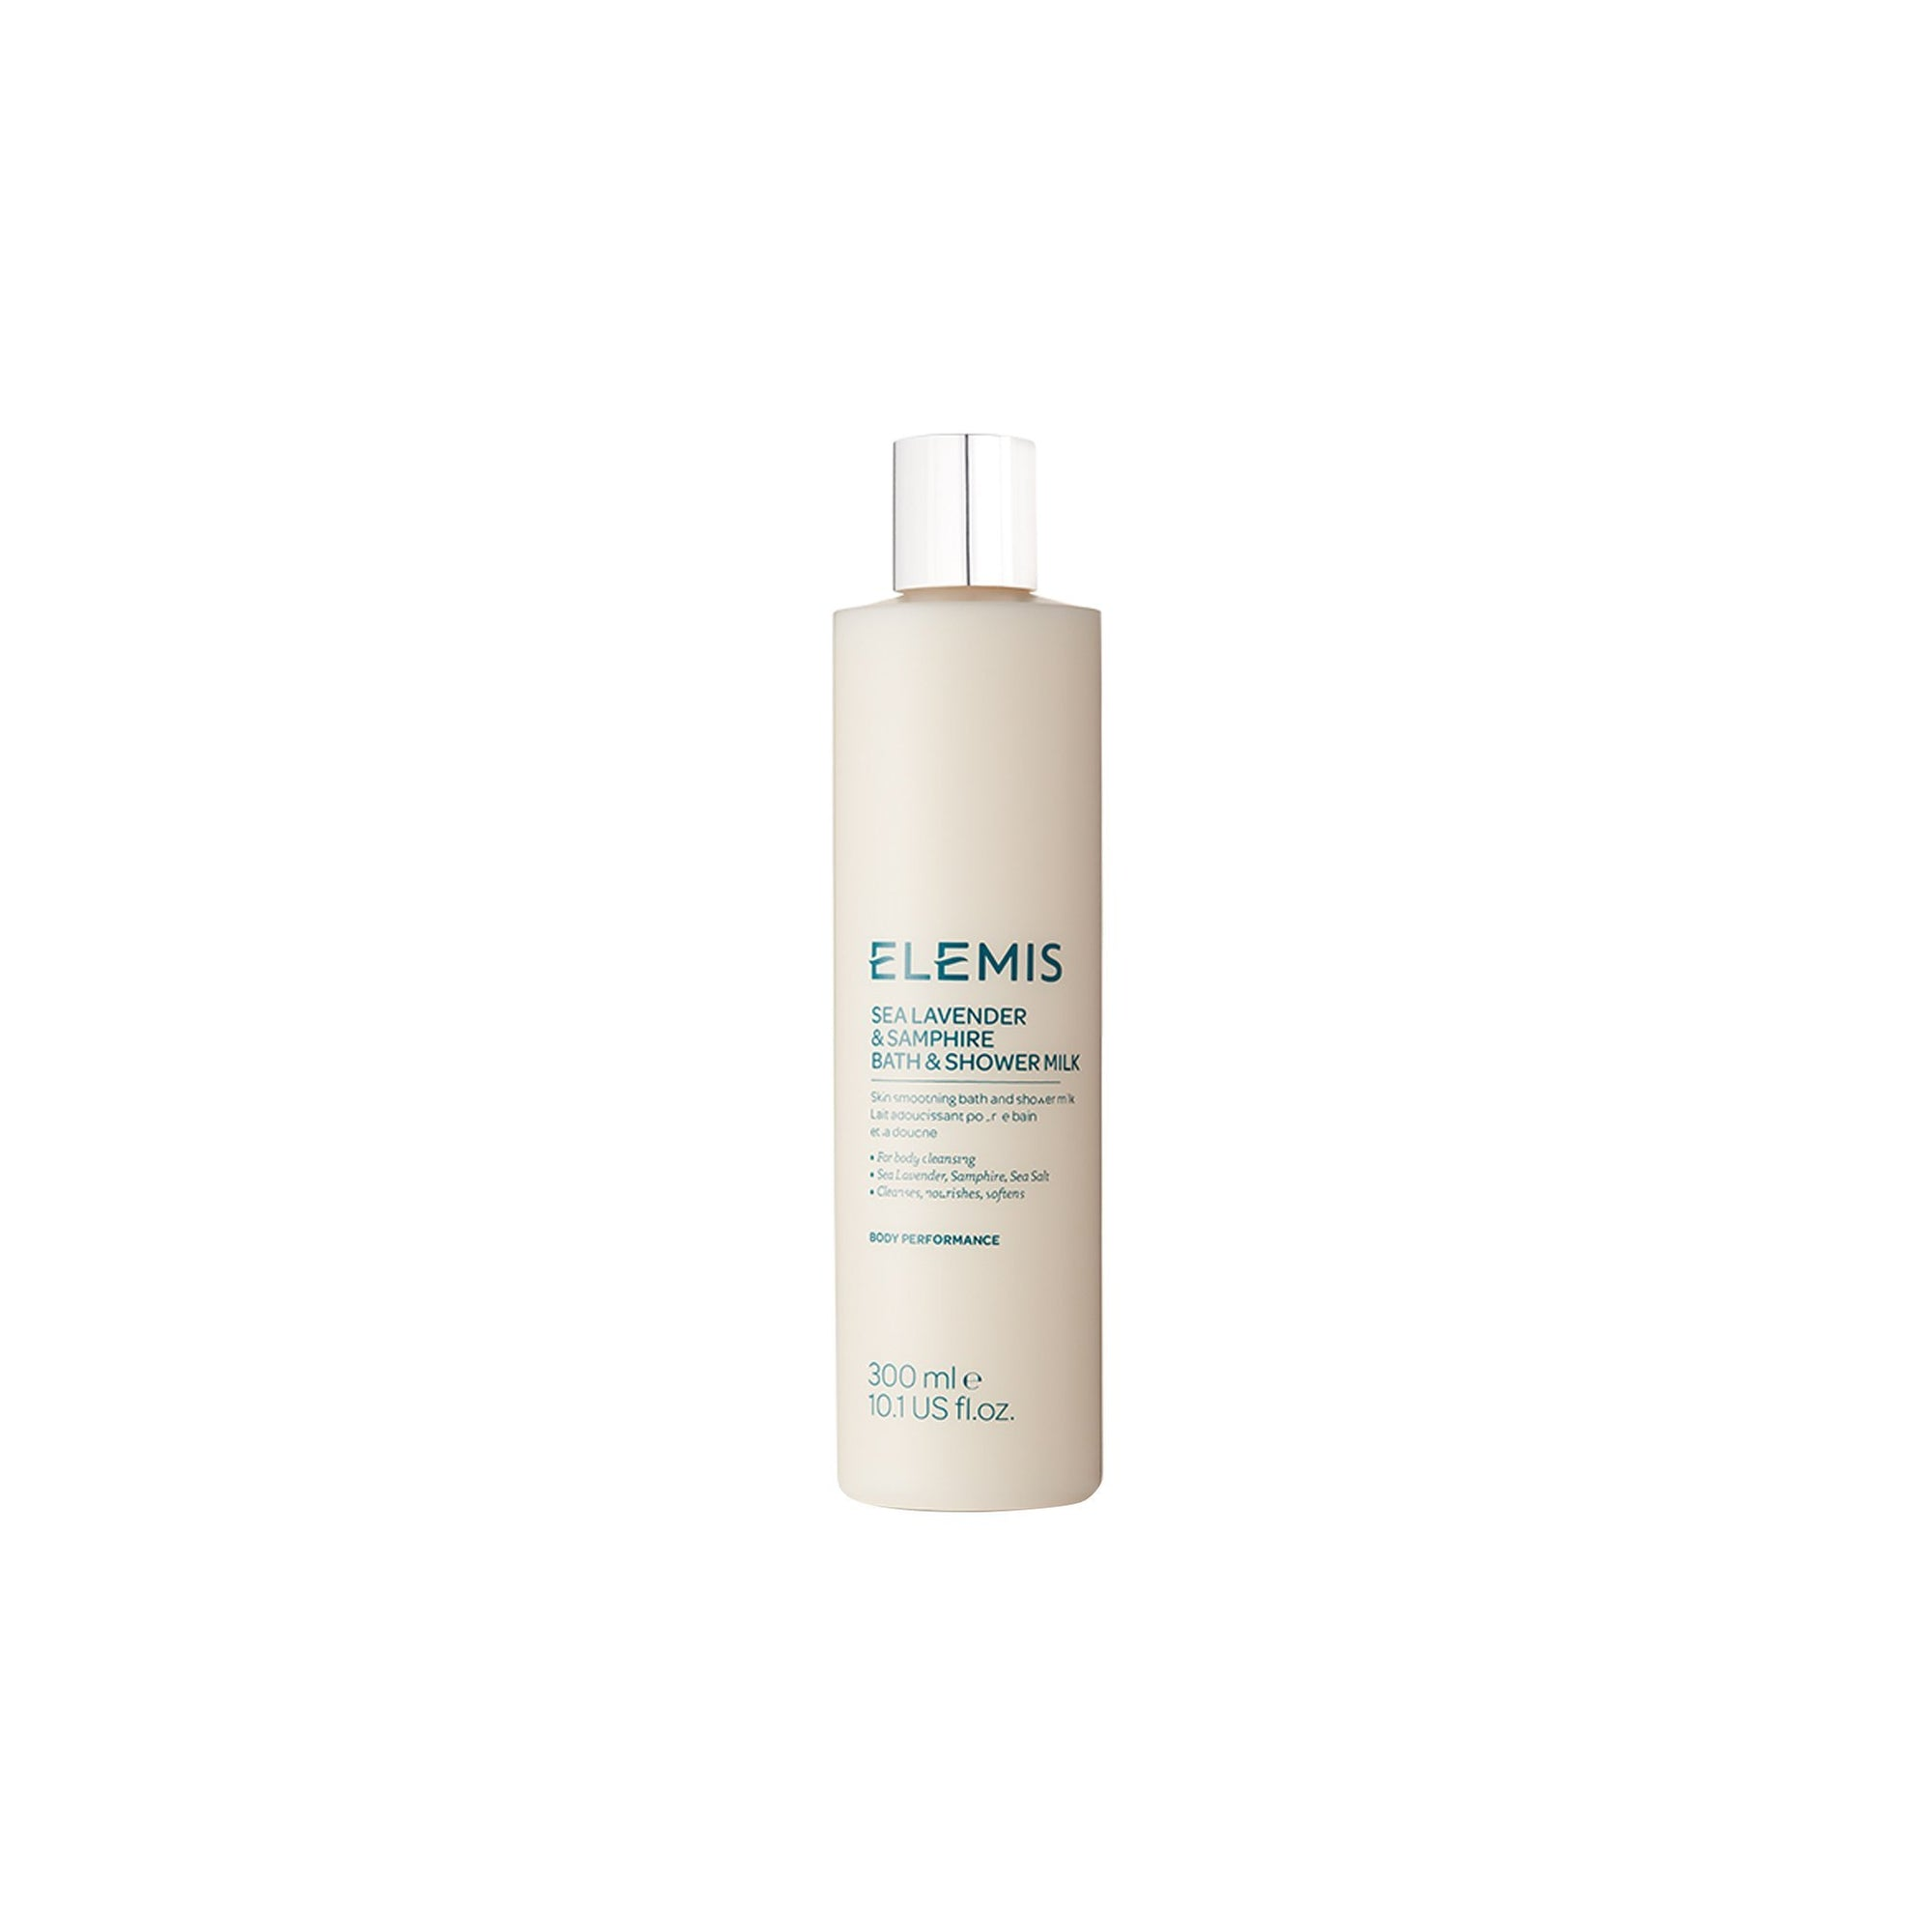 Elemis Sea Lavender & Samphire Bath & Shower Wash 300ml